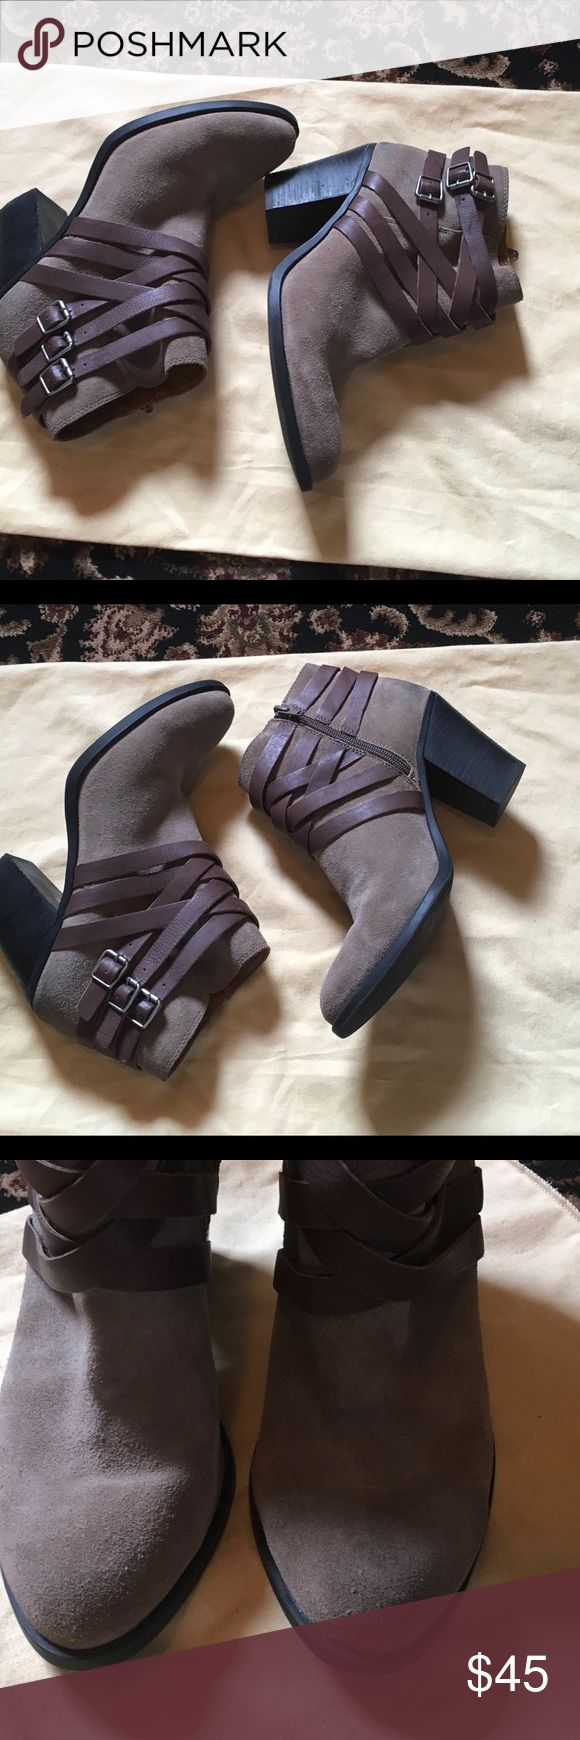 Lucky Brand Suede Booties Sz 10 Super cute and comfy suede boots with leather straps in very good condition only flaw is in back of boot jean rub mark (pic#5) Lucky Brand Shoes Ankle Boots & Booties